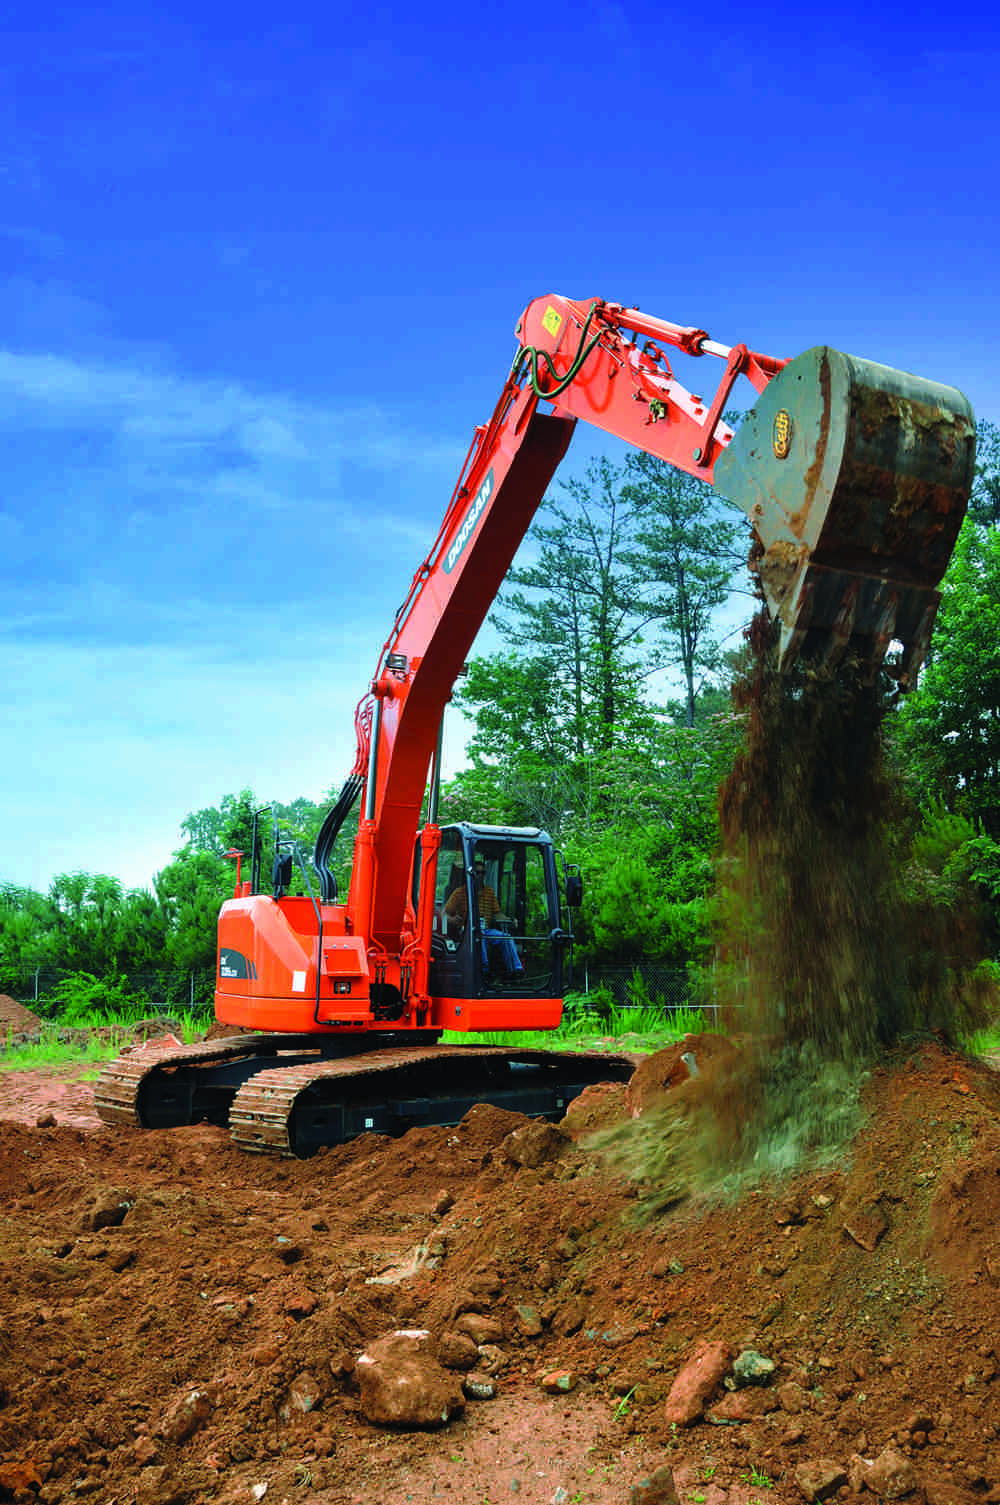 Jd Ce X in addition Doosan Dx Lcr Excavator besides Z Gen Lifting Capacities besides  furthermore Hqdefault. on trackhoe hydraulic system